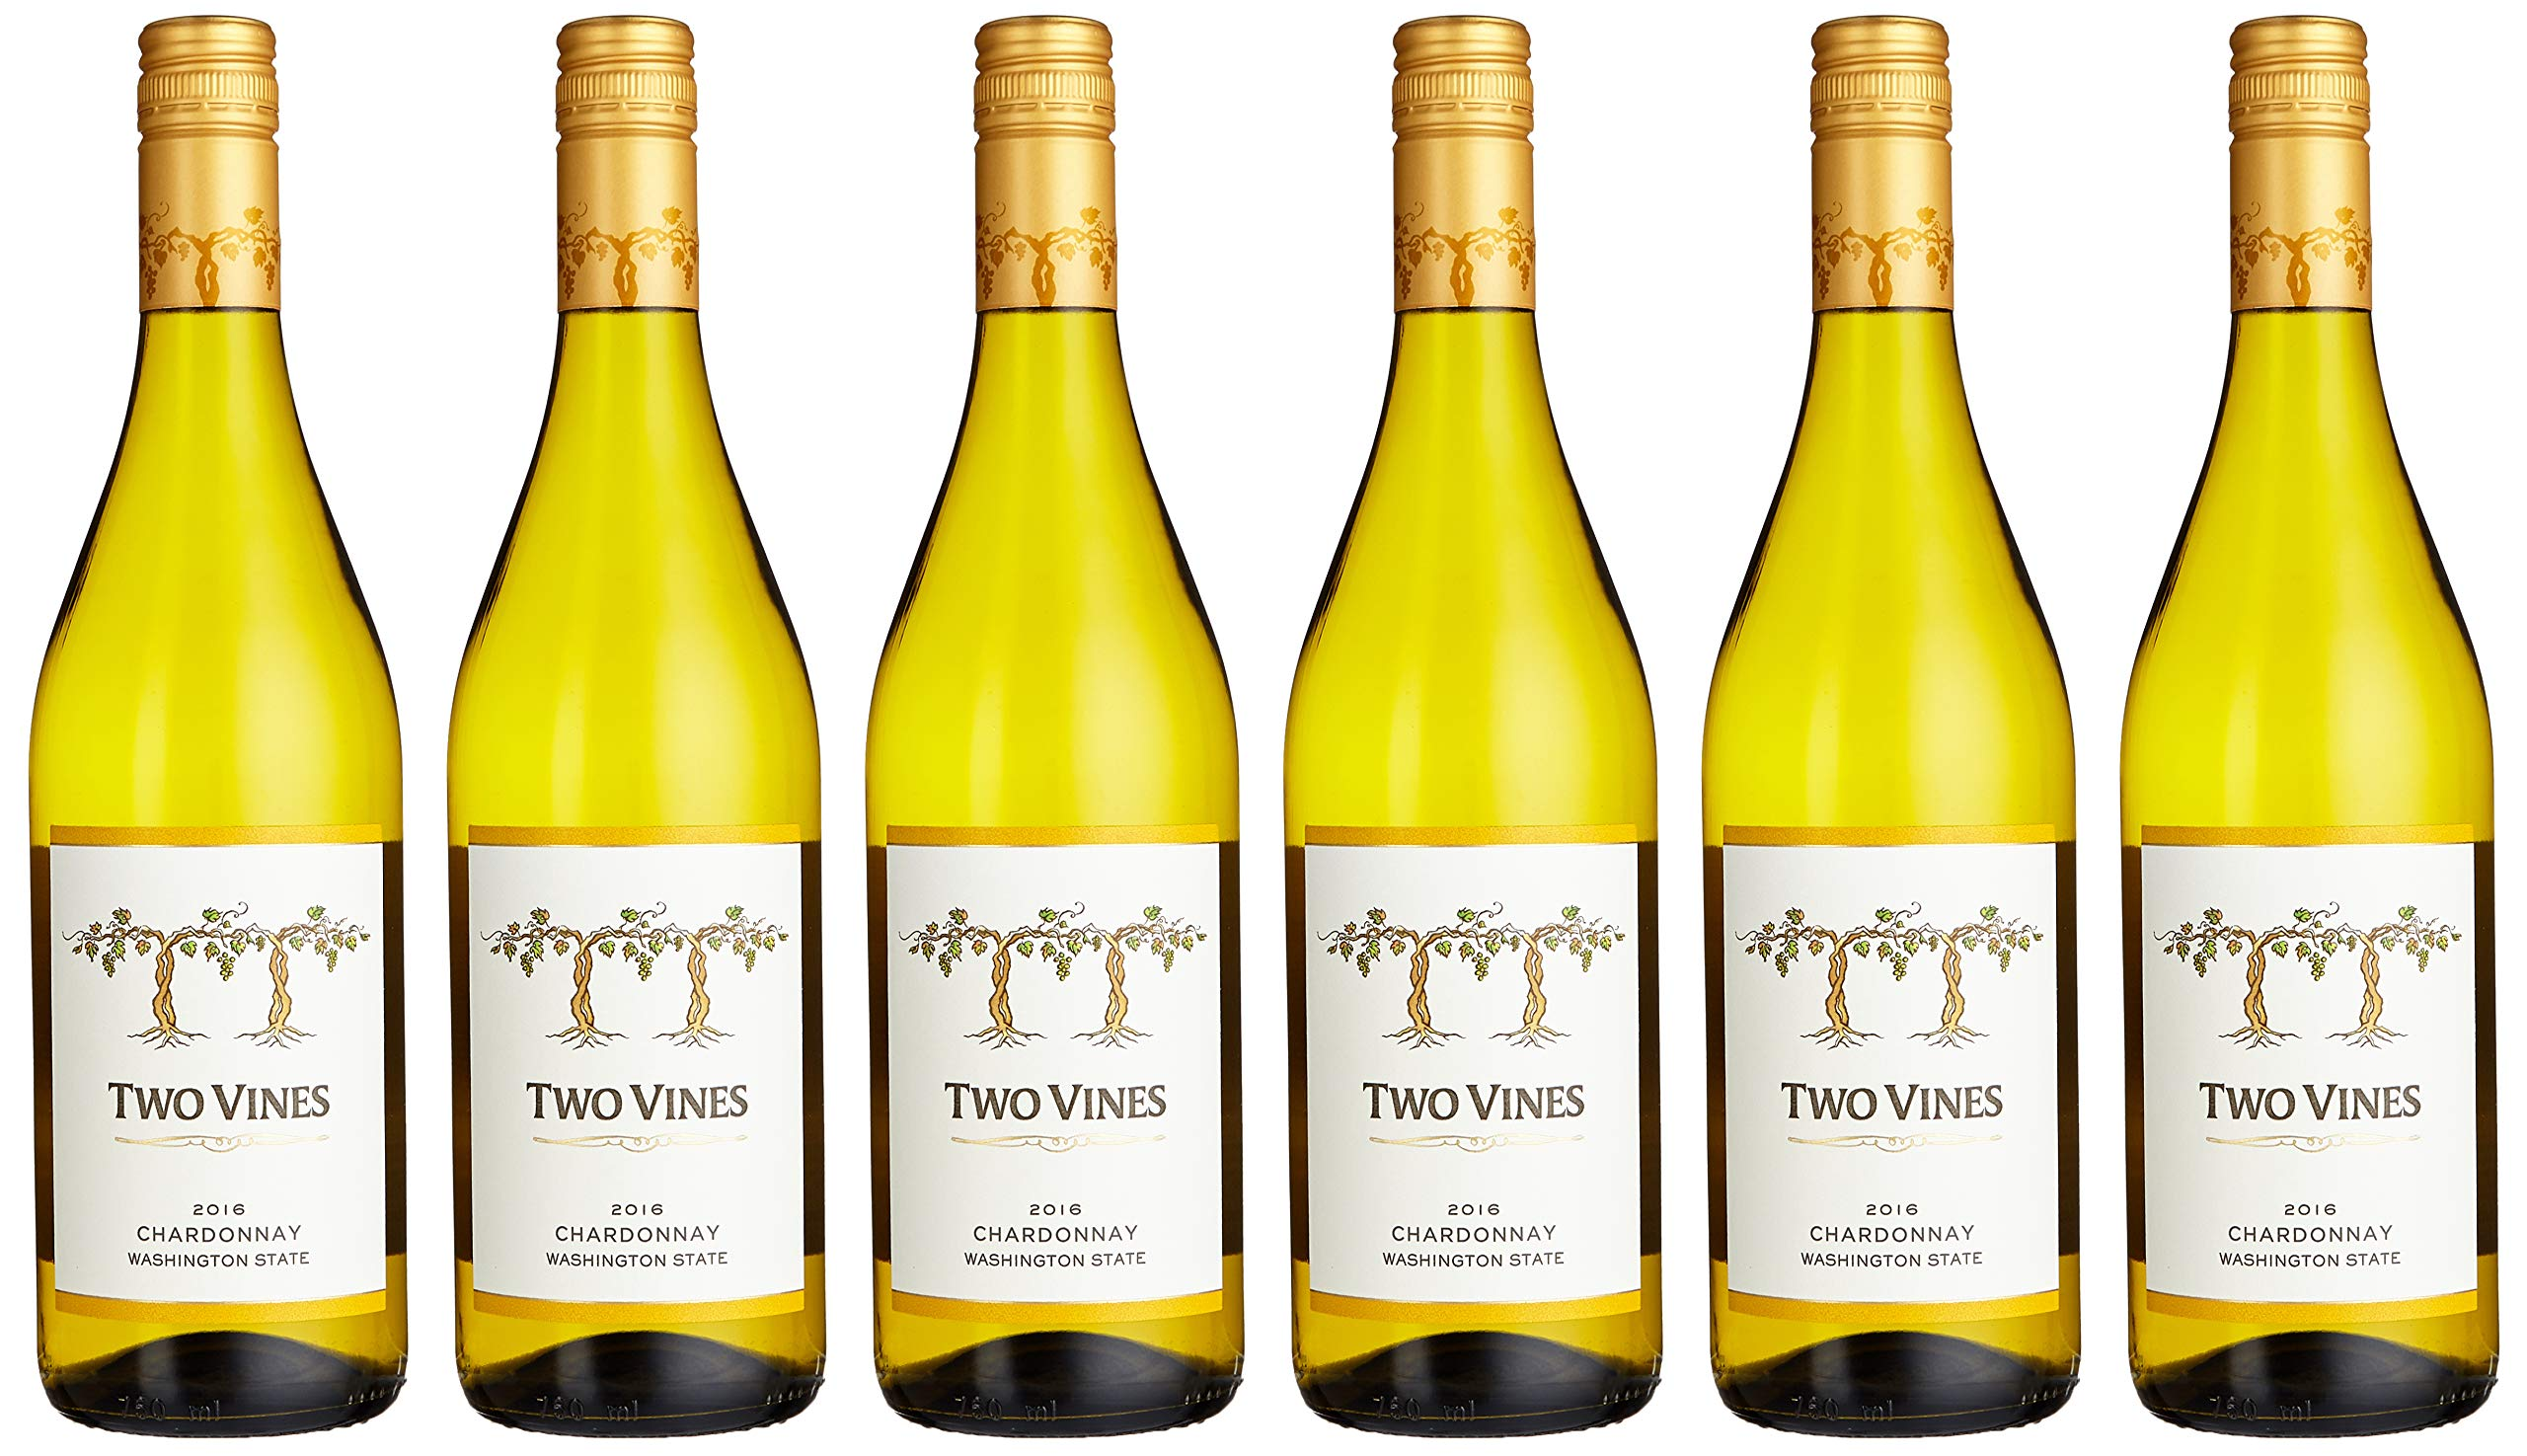 Columbia-Crest-Two-Vines-Chardonnay-Unoaked-2015-6-x-075-l